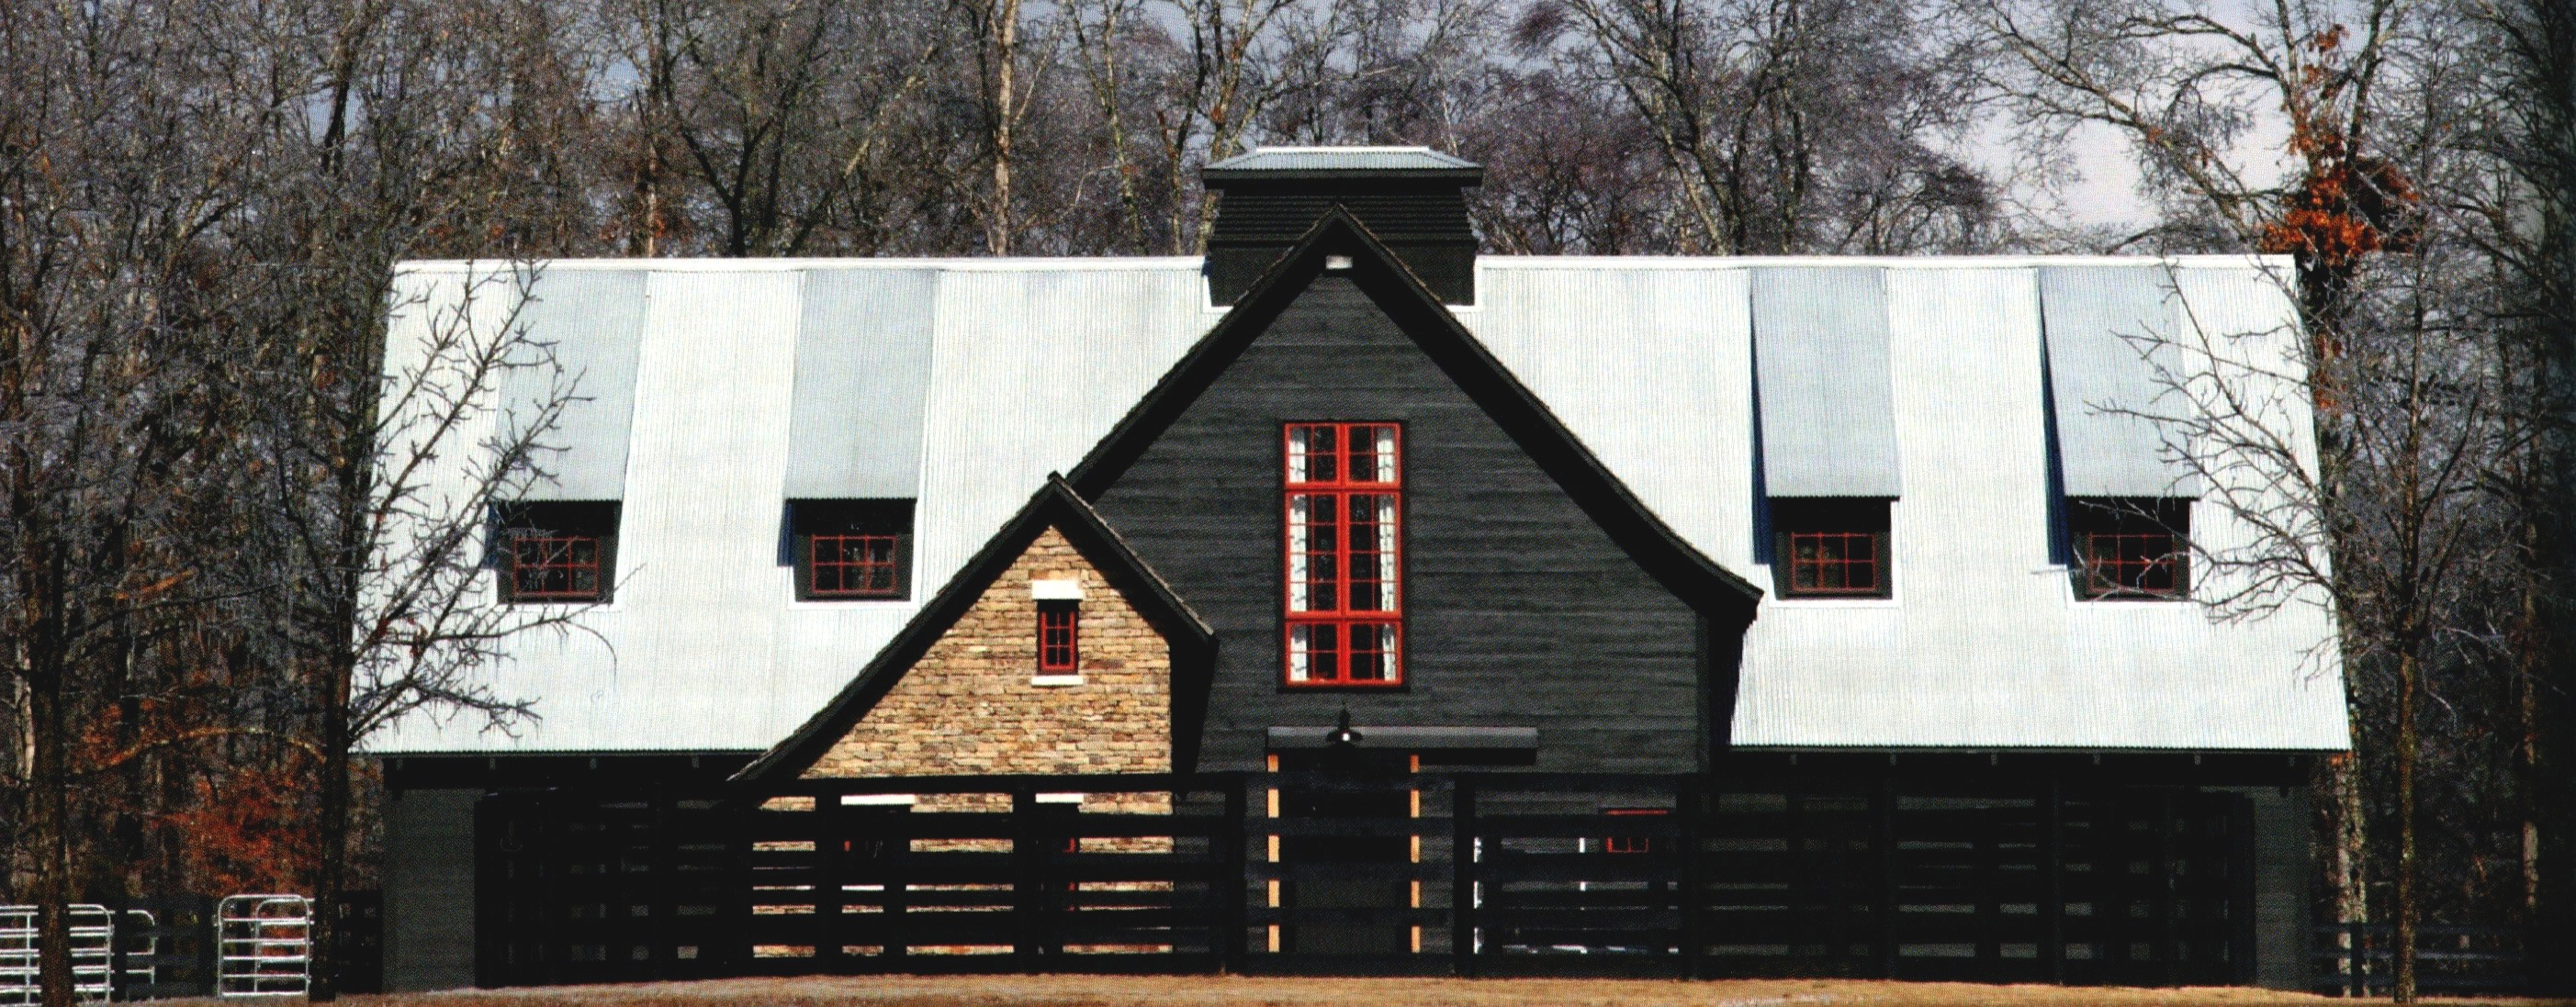 McAlpine Journal: Barn Design